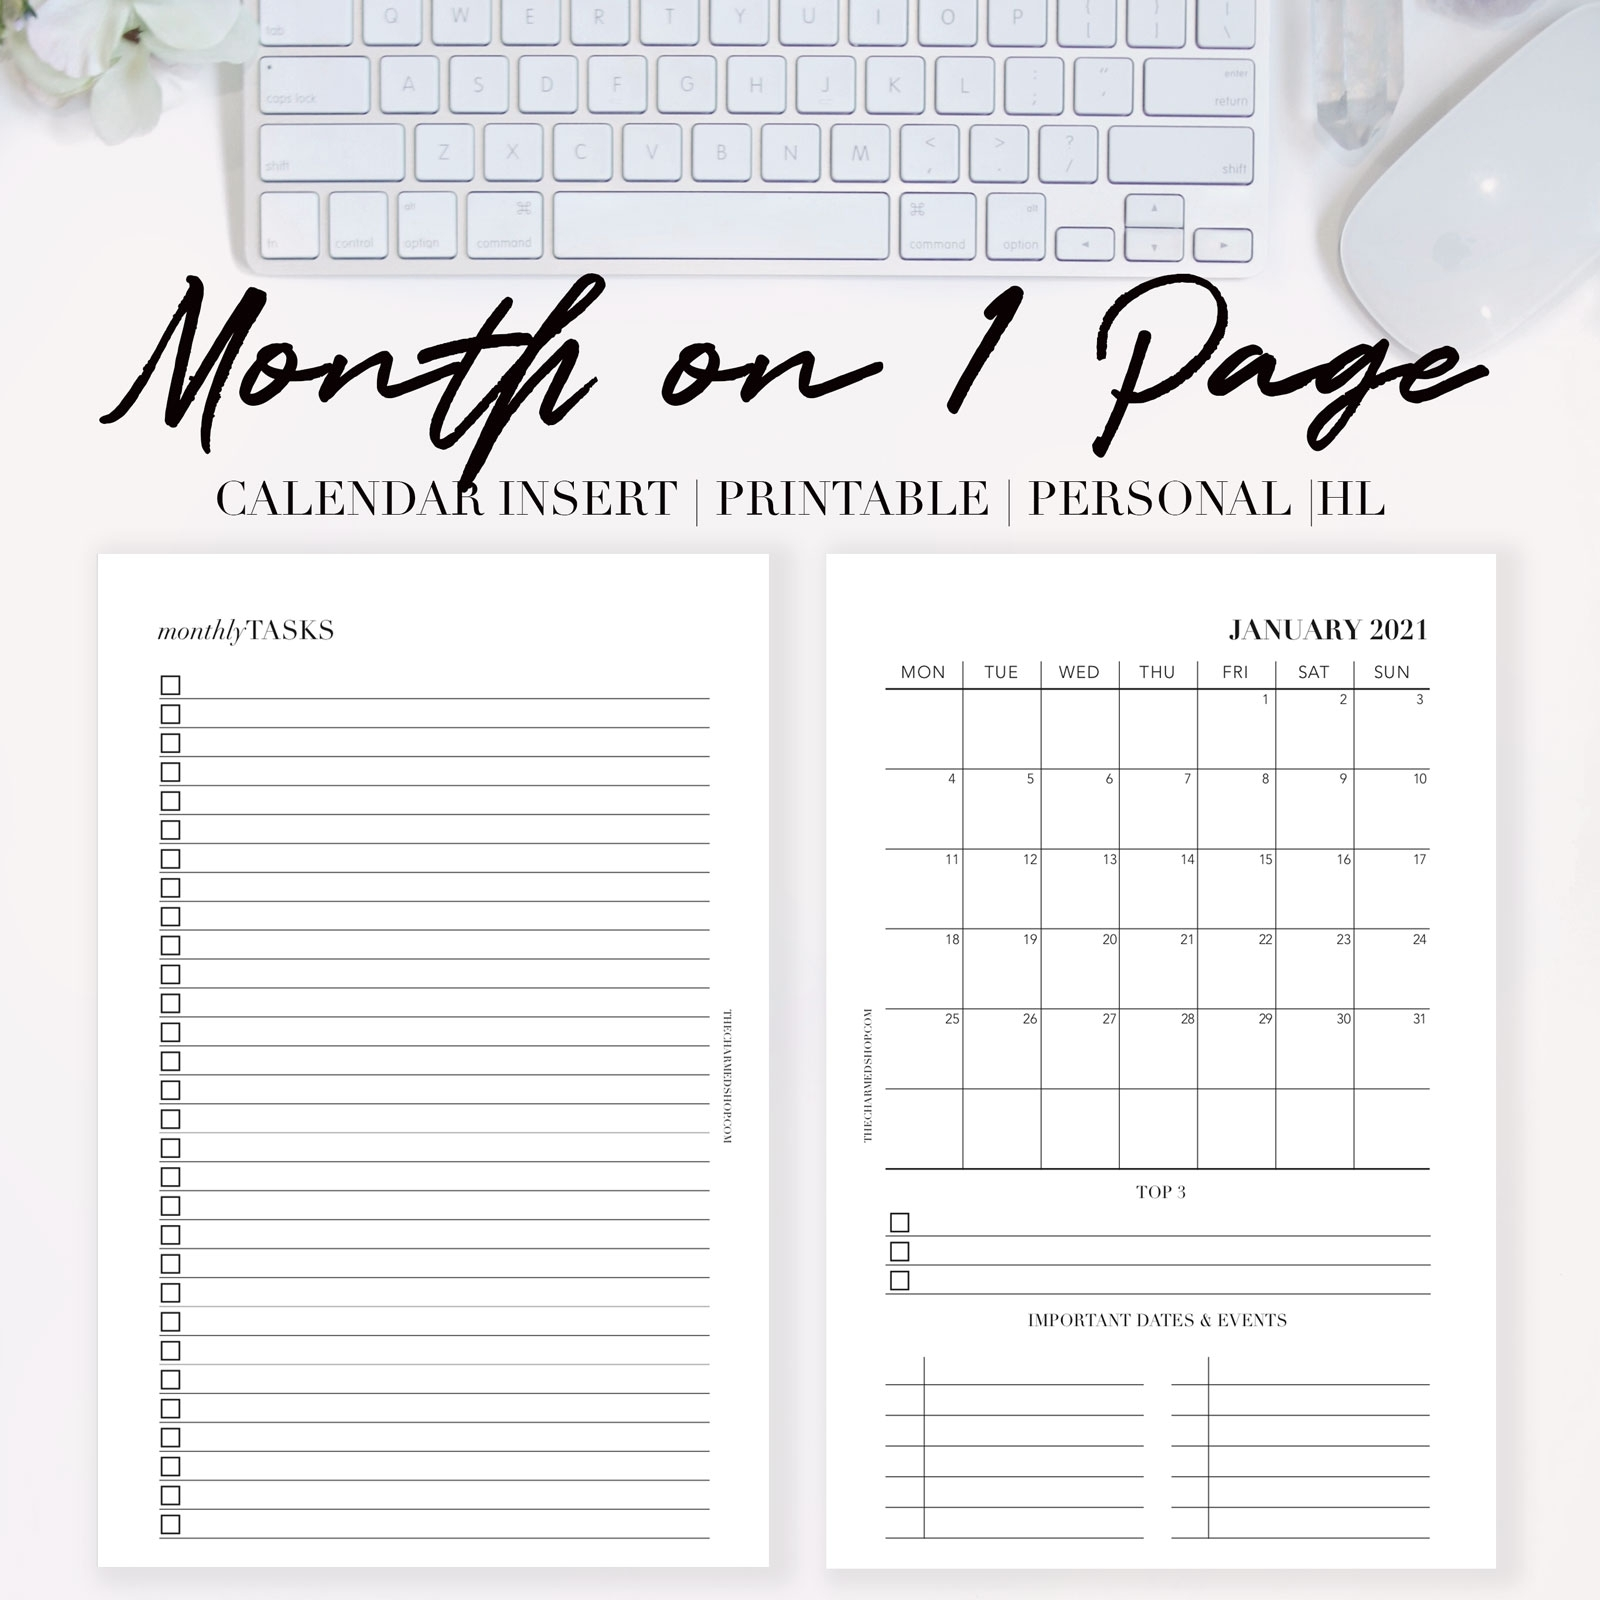 2021 Month On One Page Calendar {Printable Pdf} - The Charmed Shop